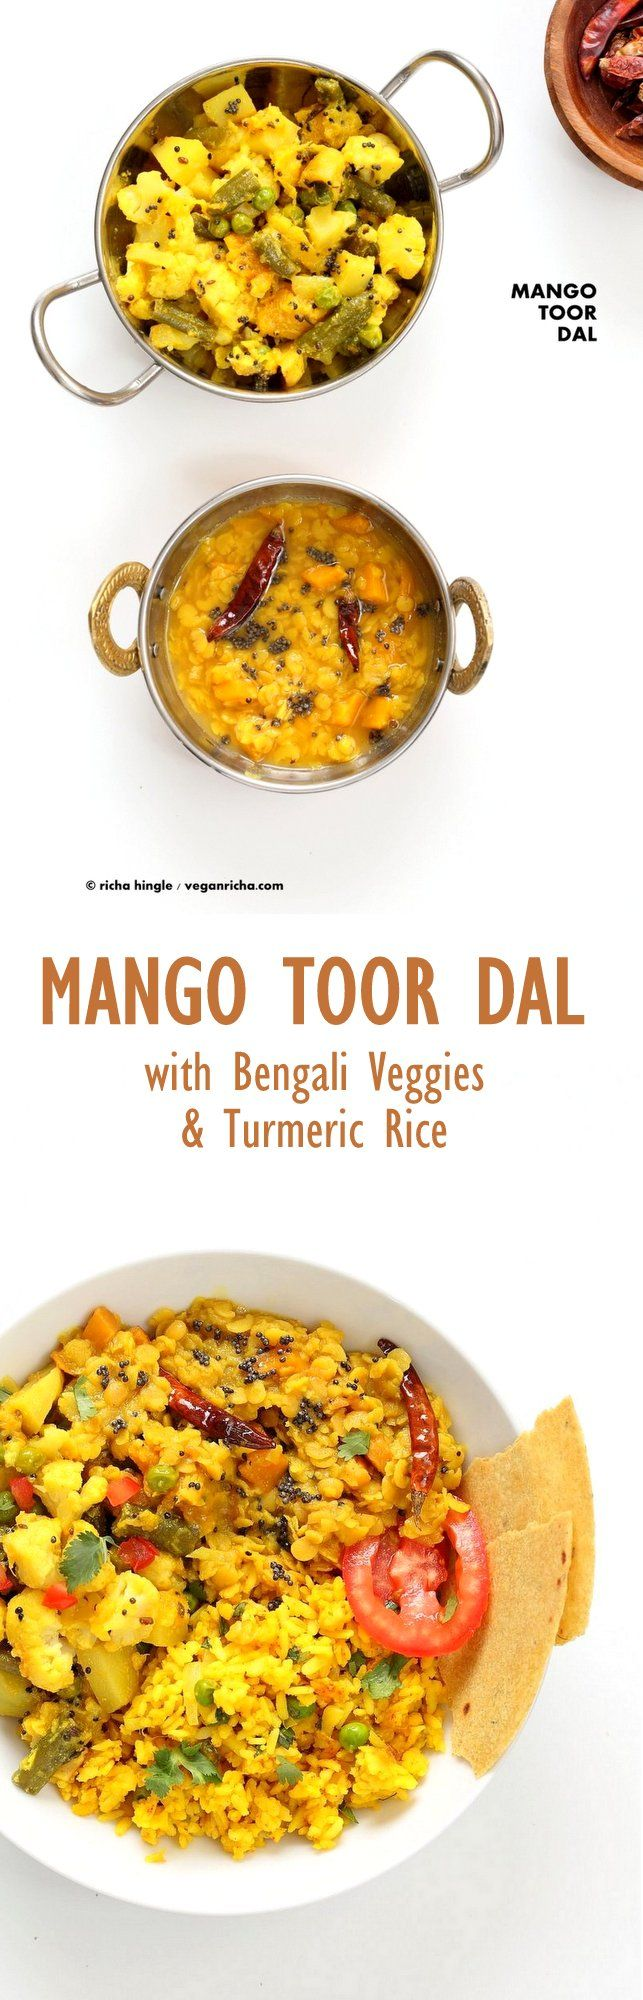 Indian Mango Dal. Toor Dal with unripe or ripe mango and 6 ingredients. Easy 1 pot soup or side. Use other lentils or veggies for variation. Vegan Indian Dhal Recipe Gluten-free #Soyfree with Bengali Veggies   VeganRicha.com